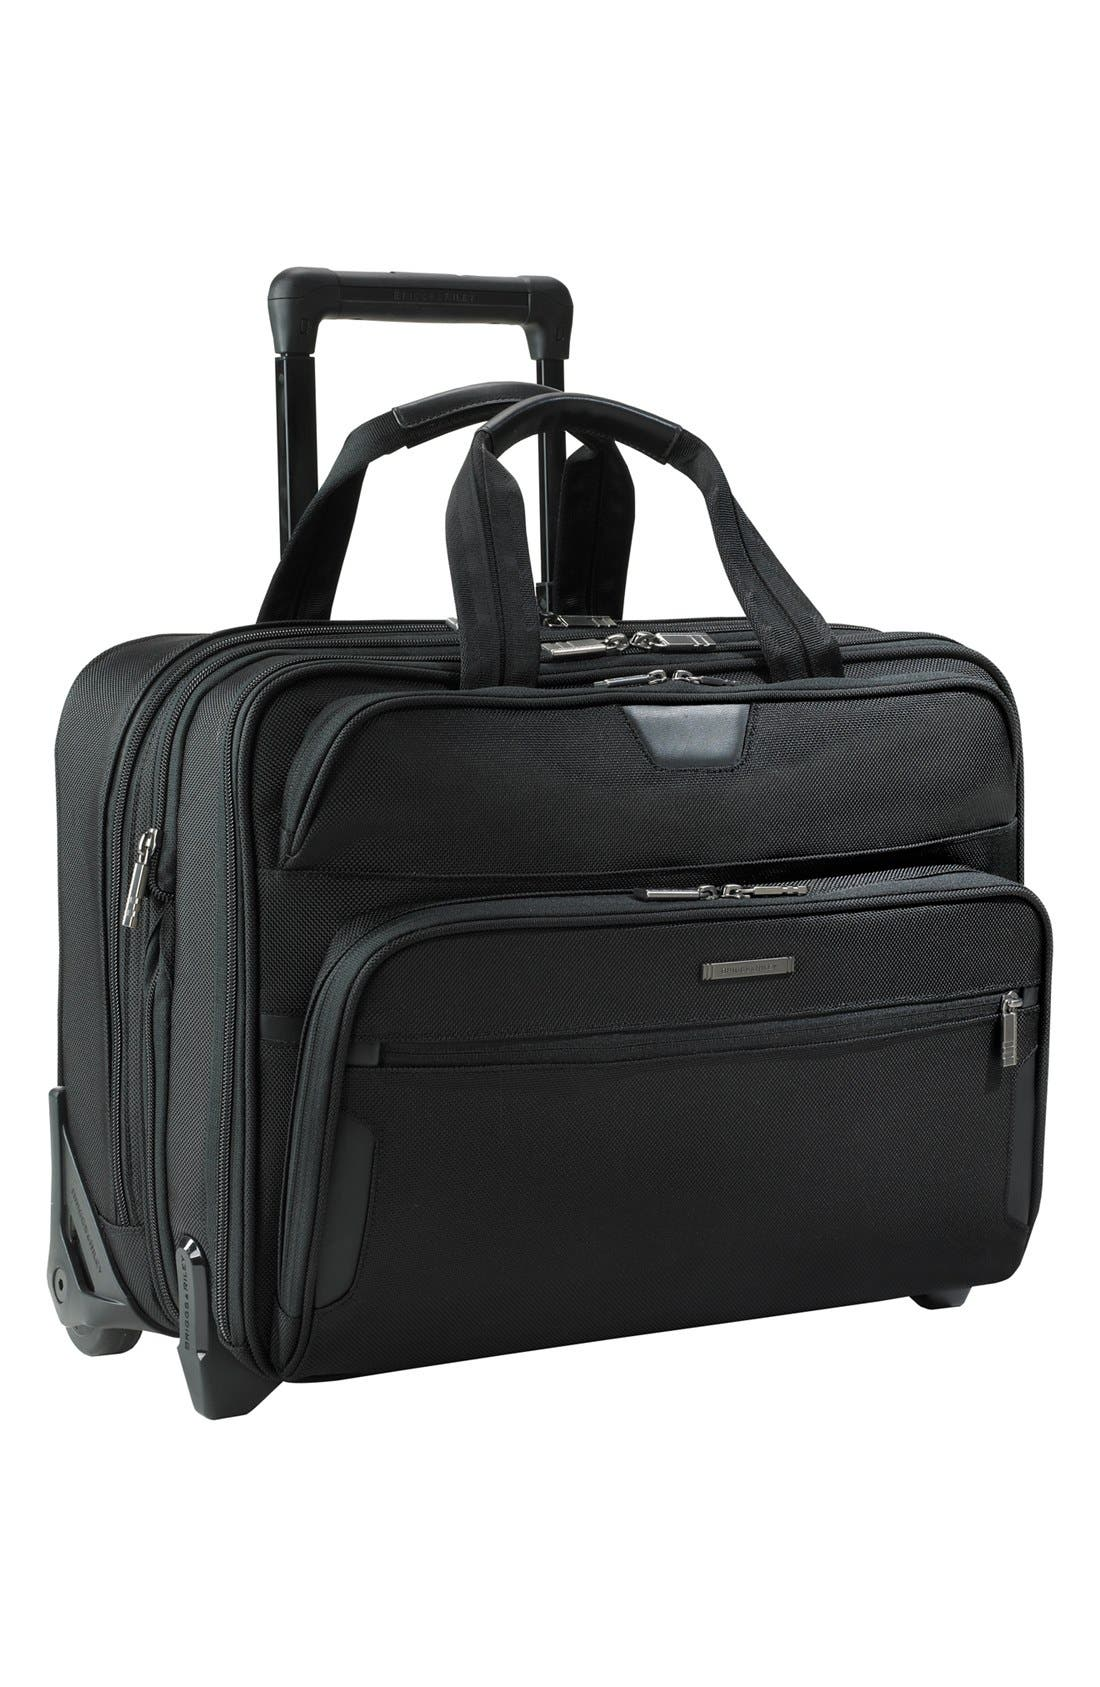 Alternate Image 1 Selected - Briggs & Riley 'Large' Expandable Rolling Ballistic Nylon Briefcase (18 Inch)